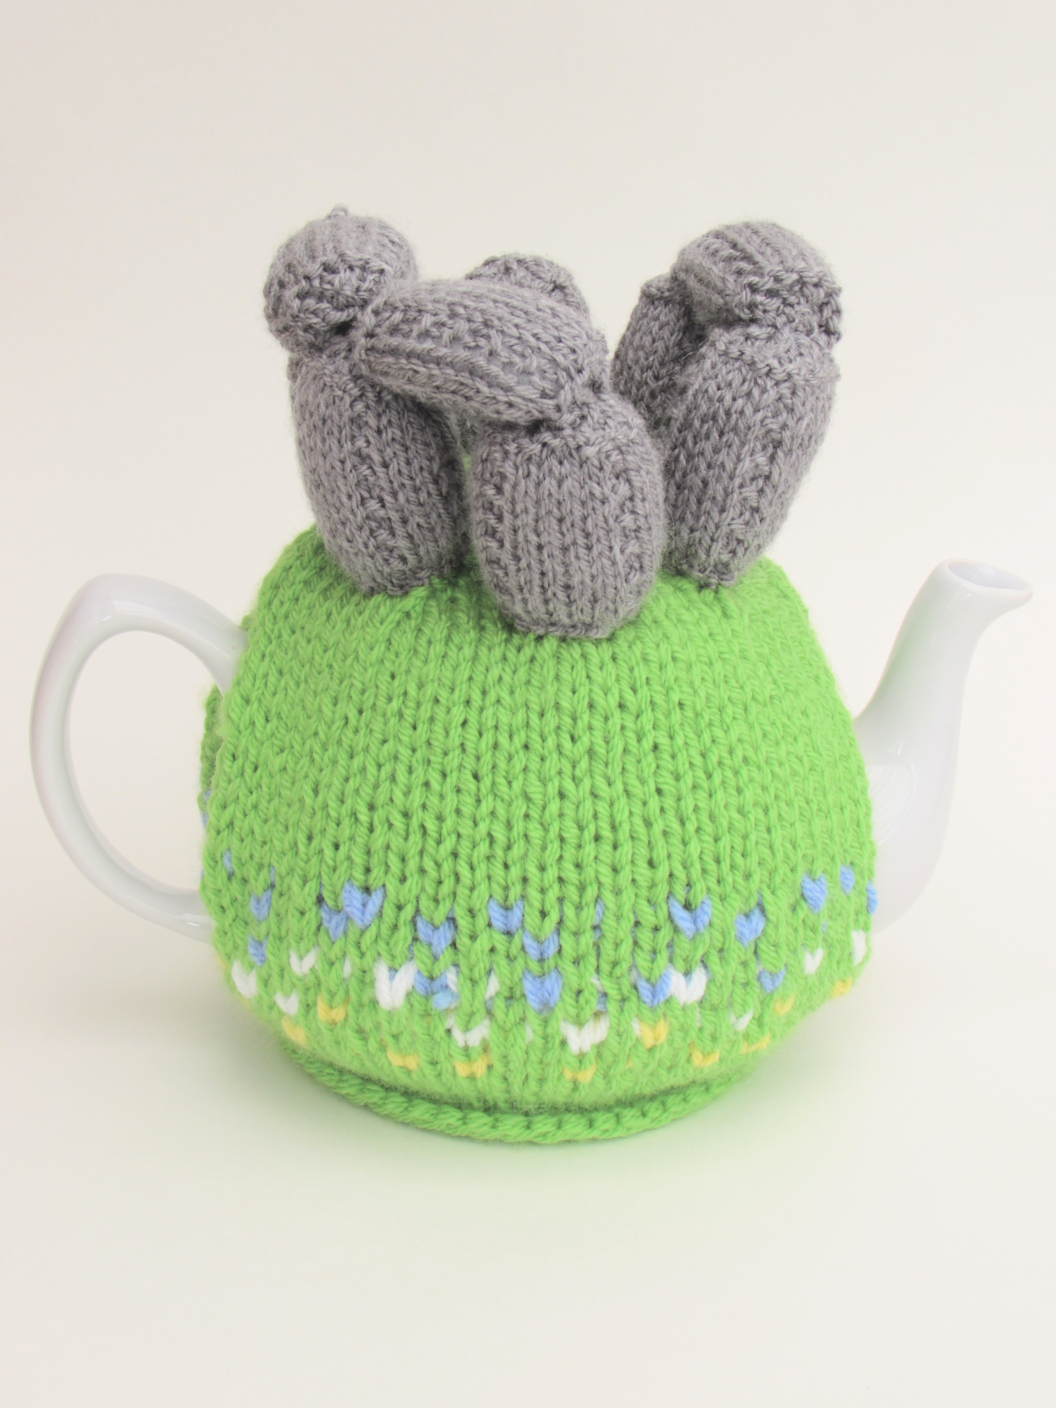 Summer Solstice tea cosy knitting pattern